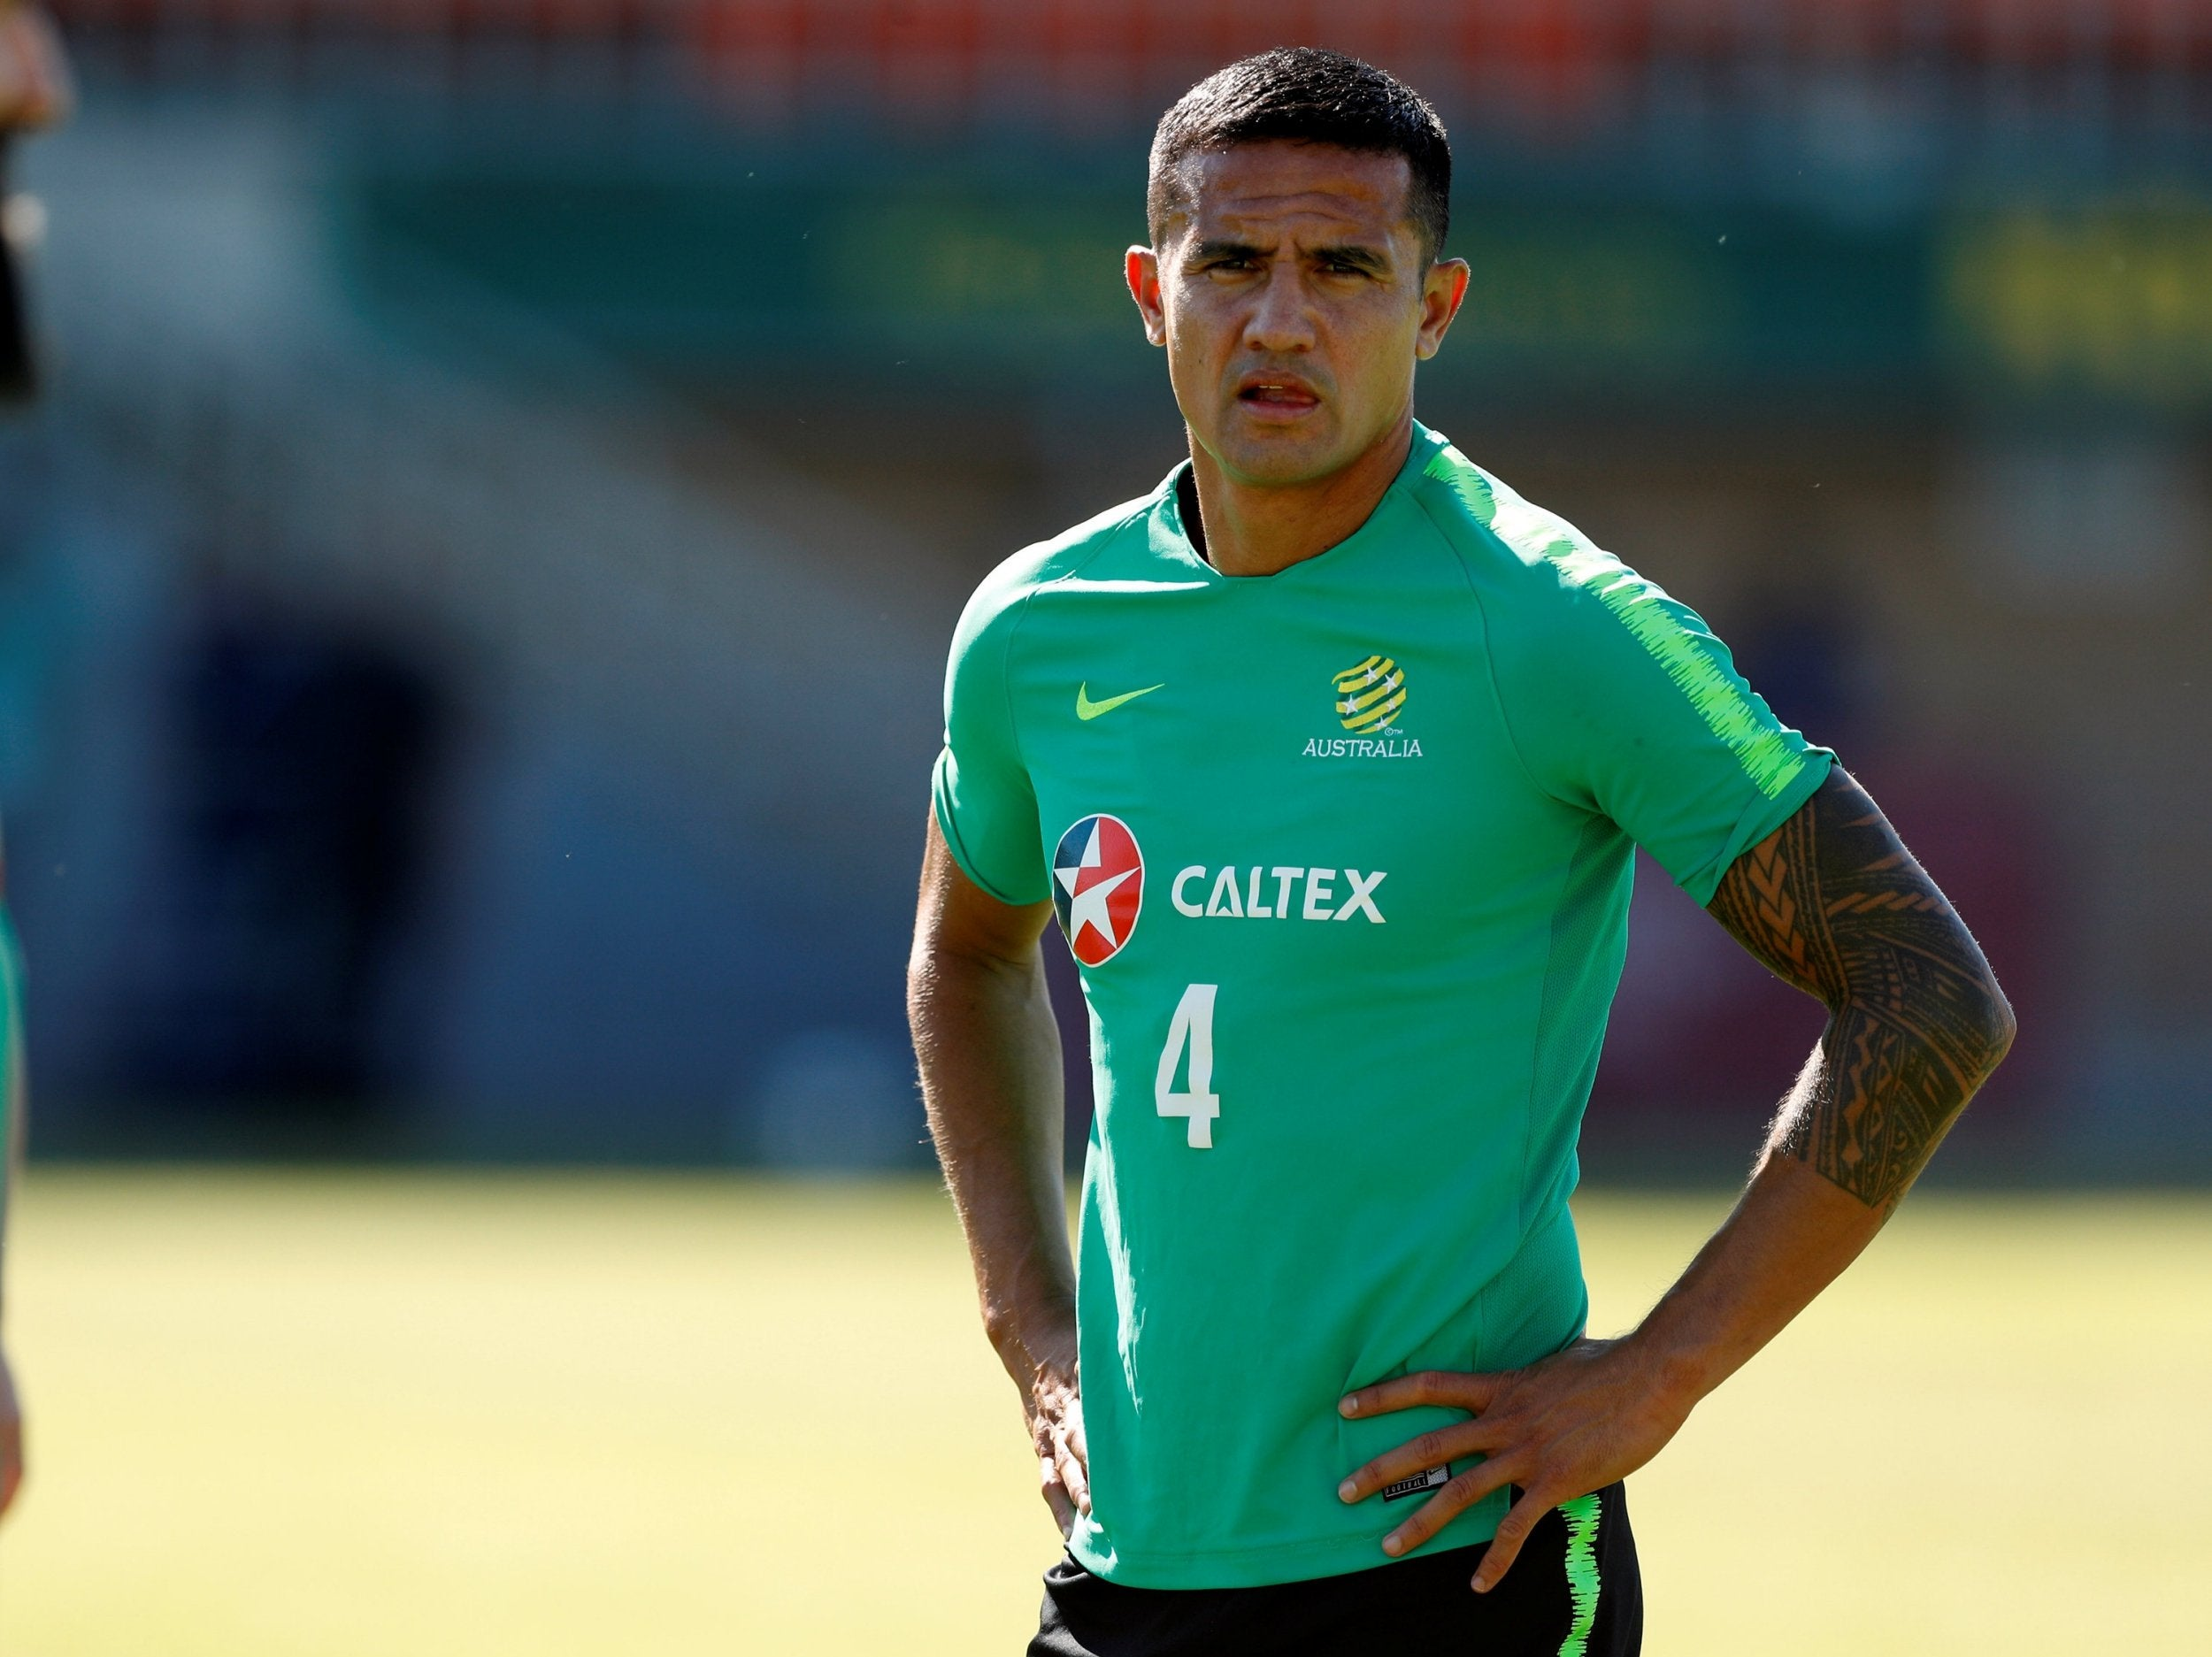 921e05ce540 Tim Cahill - latest news, breaking stories and comment - The Independent